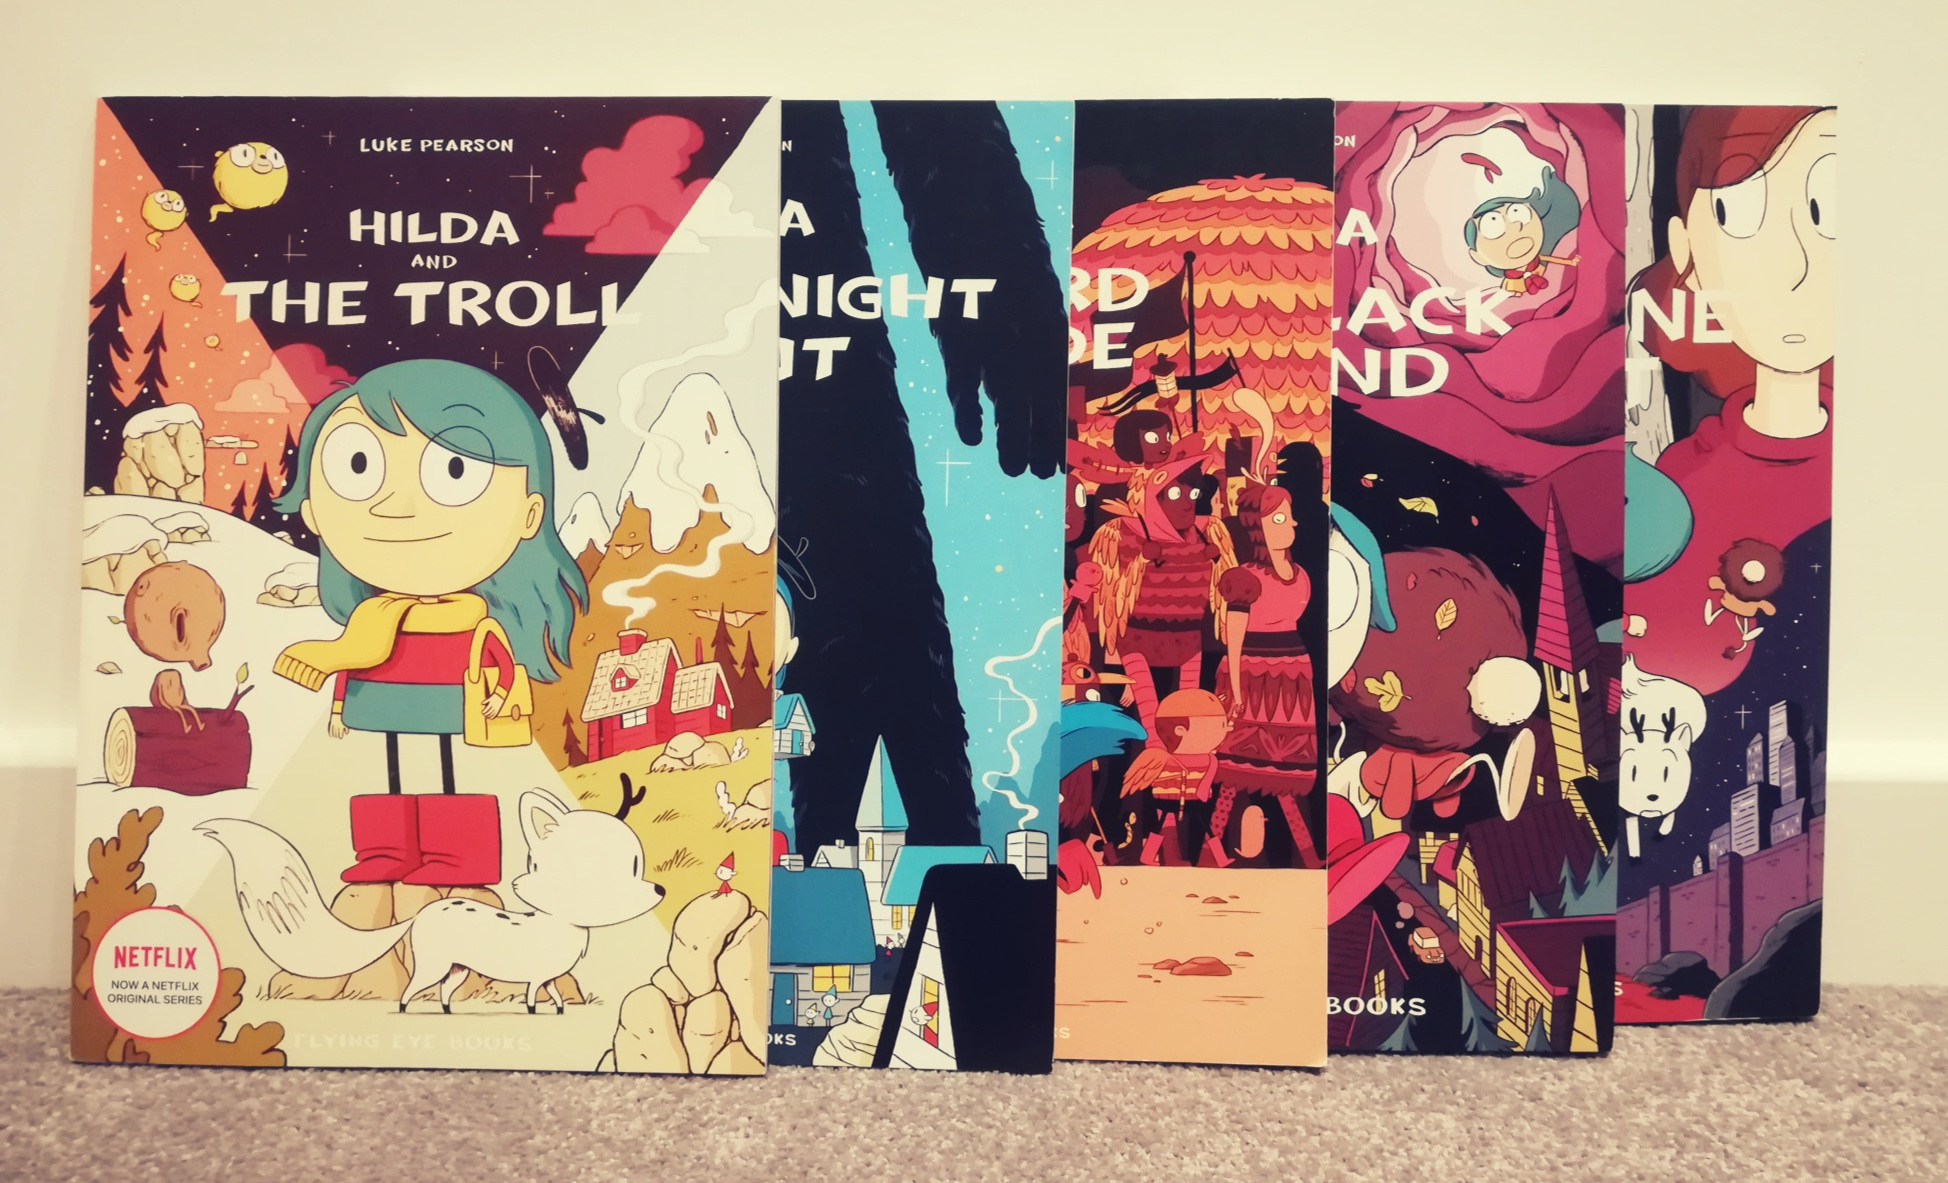 There are 5 Hilda books so far.